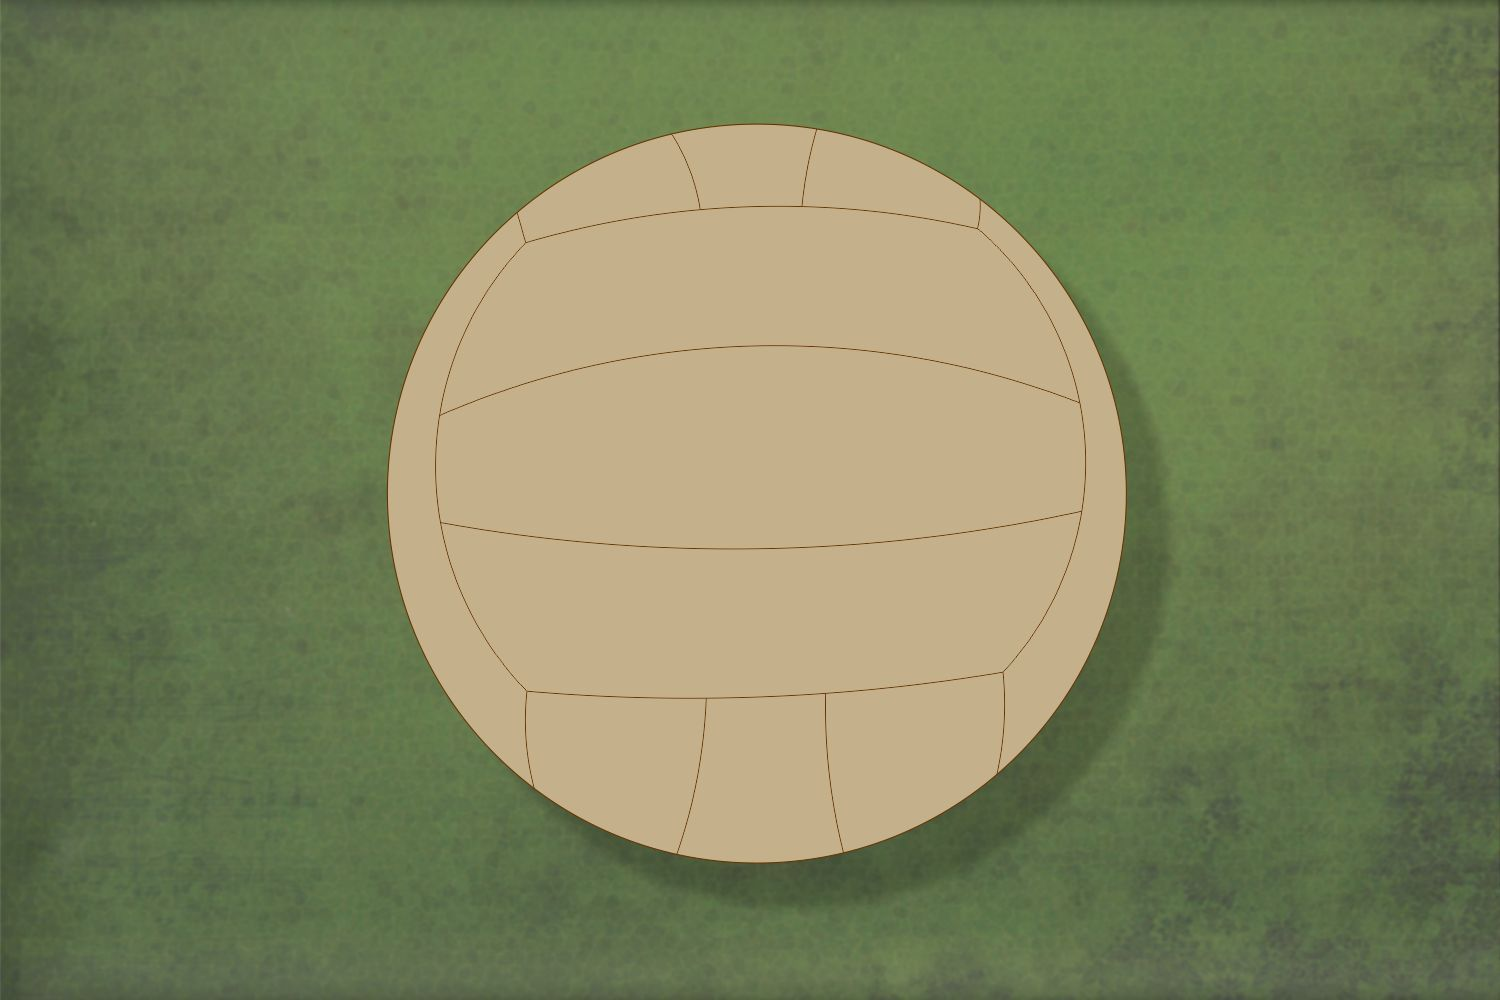 Laser cut, blank wooden Football 2 shape for craft